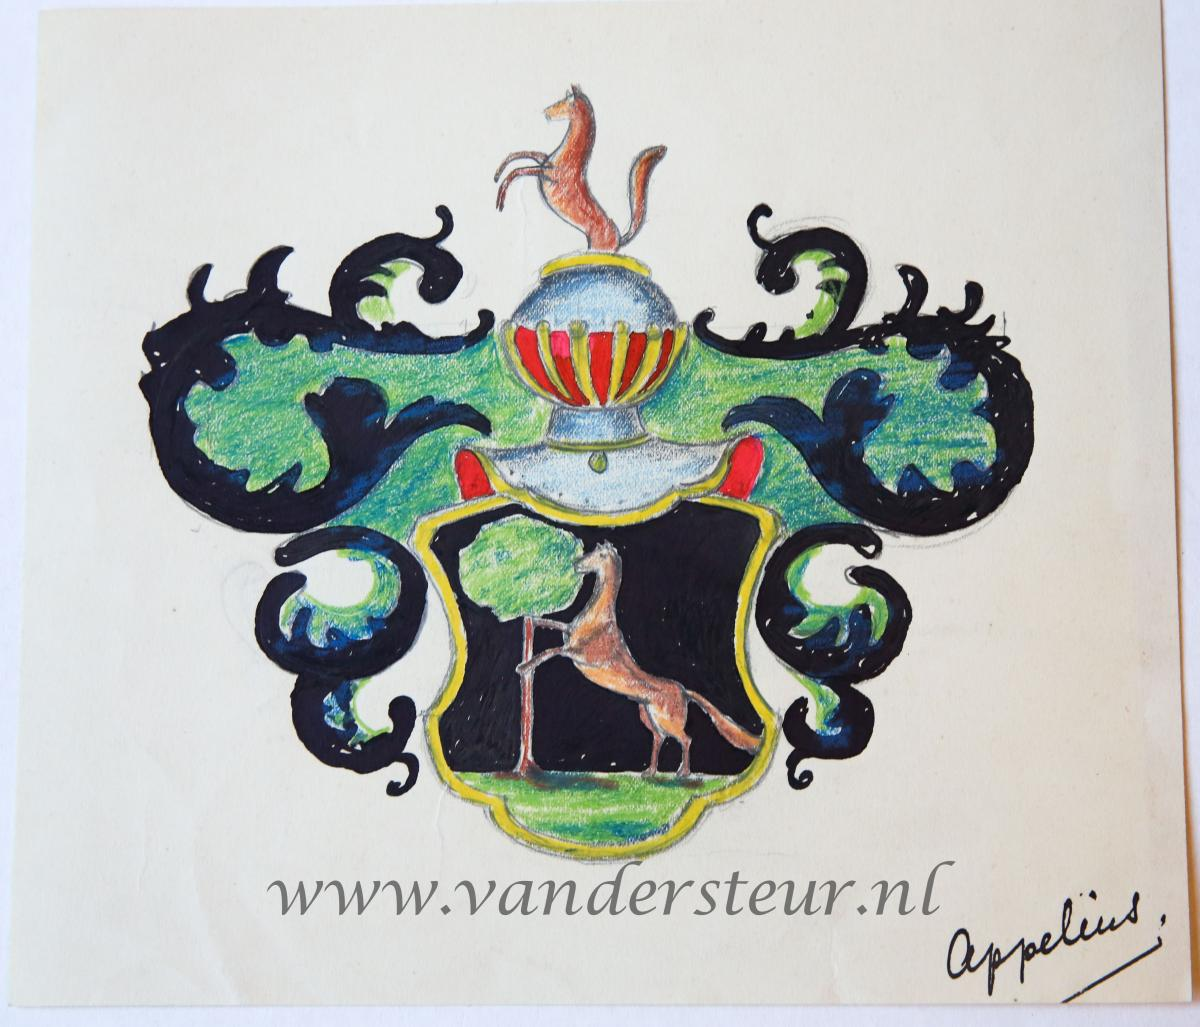 Wapenkaart/Coat of Arms: Appelius